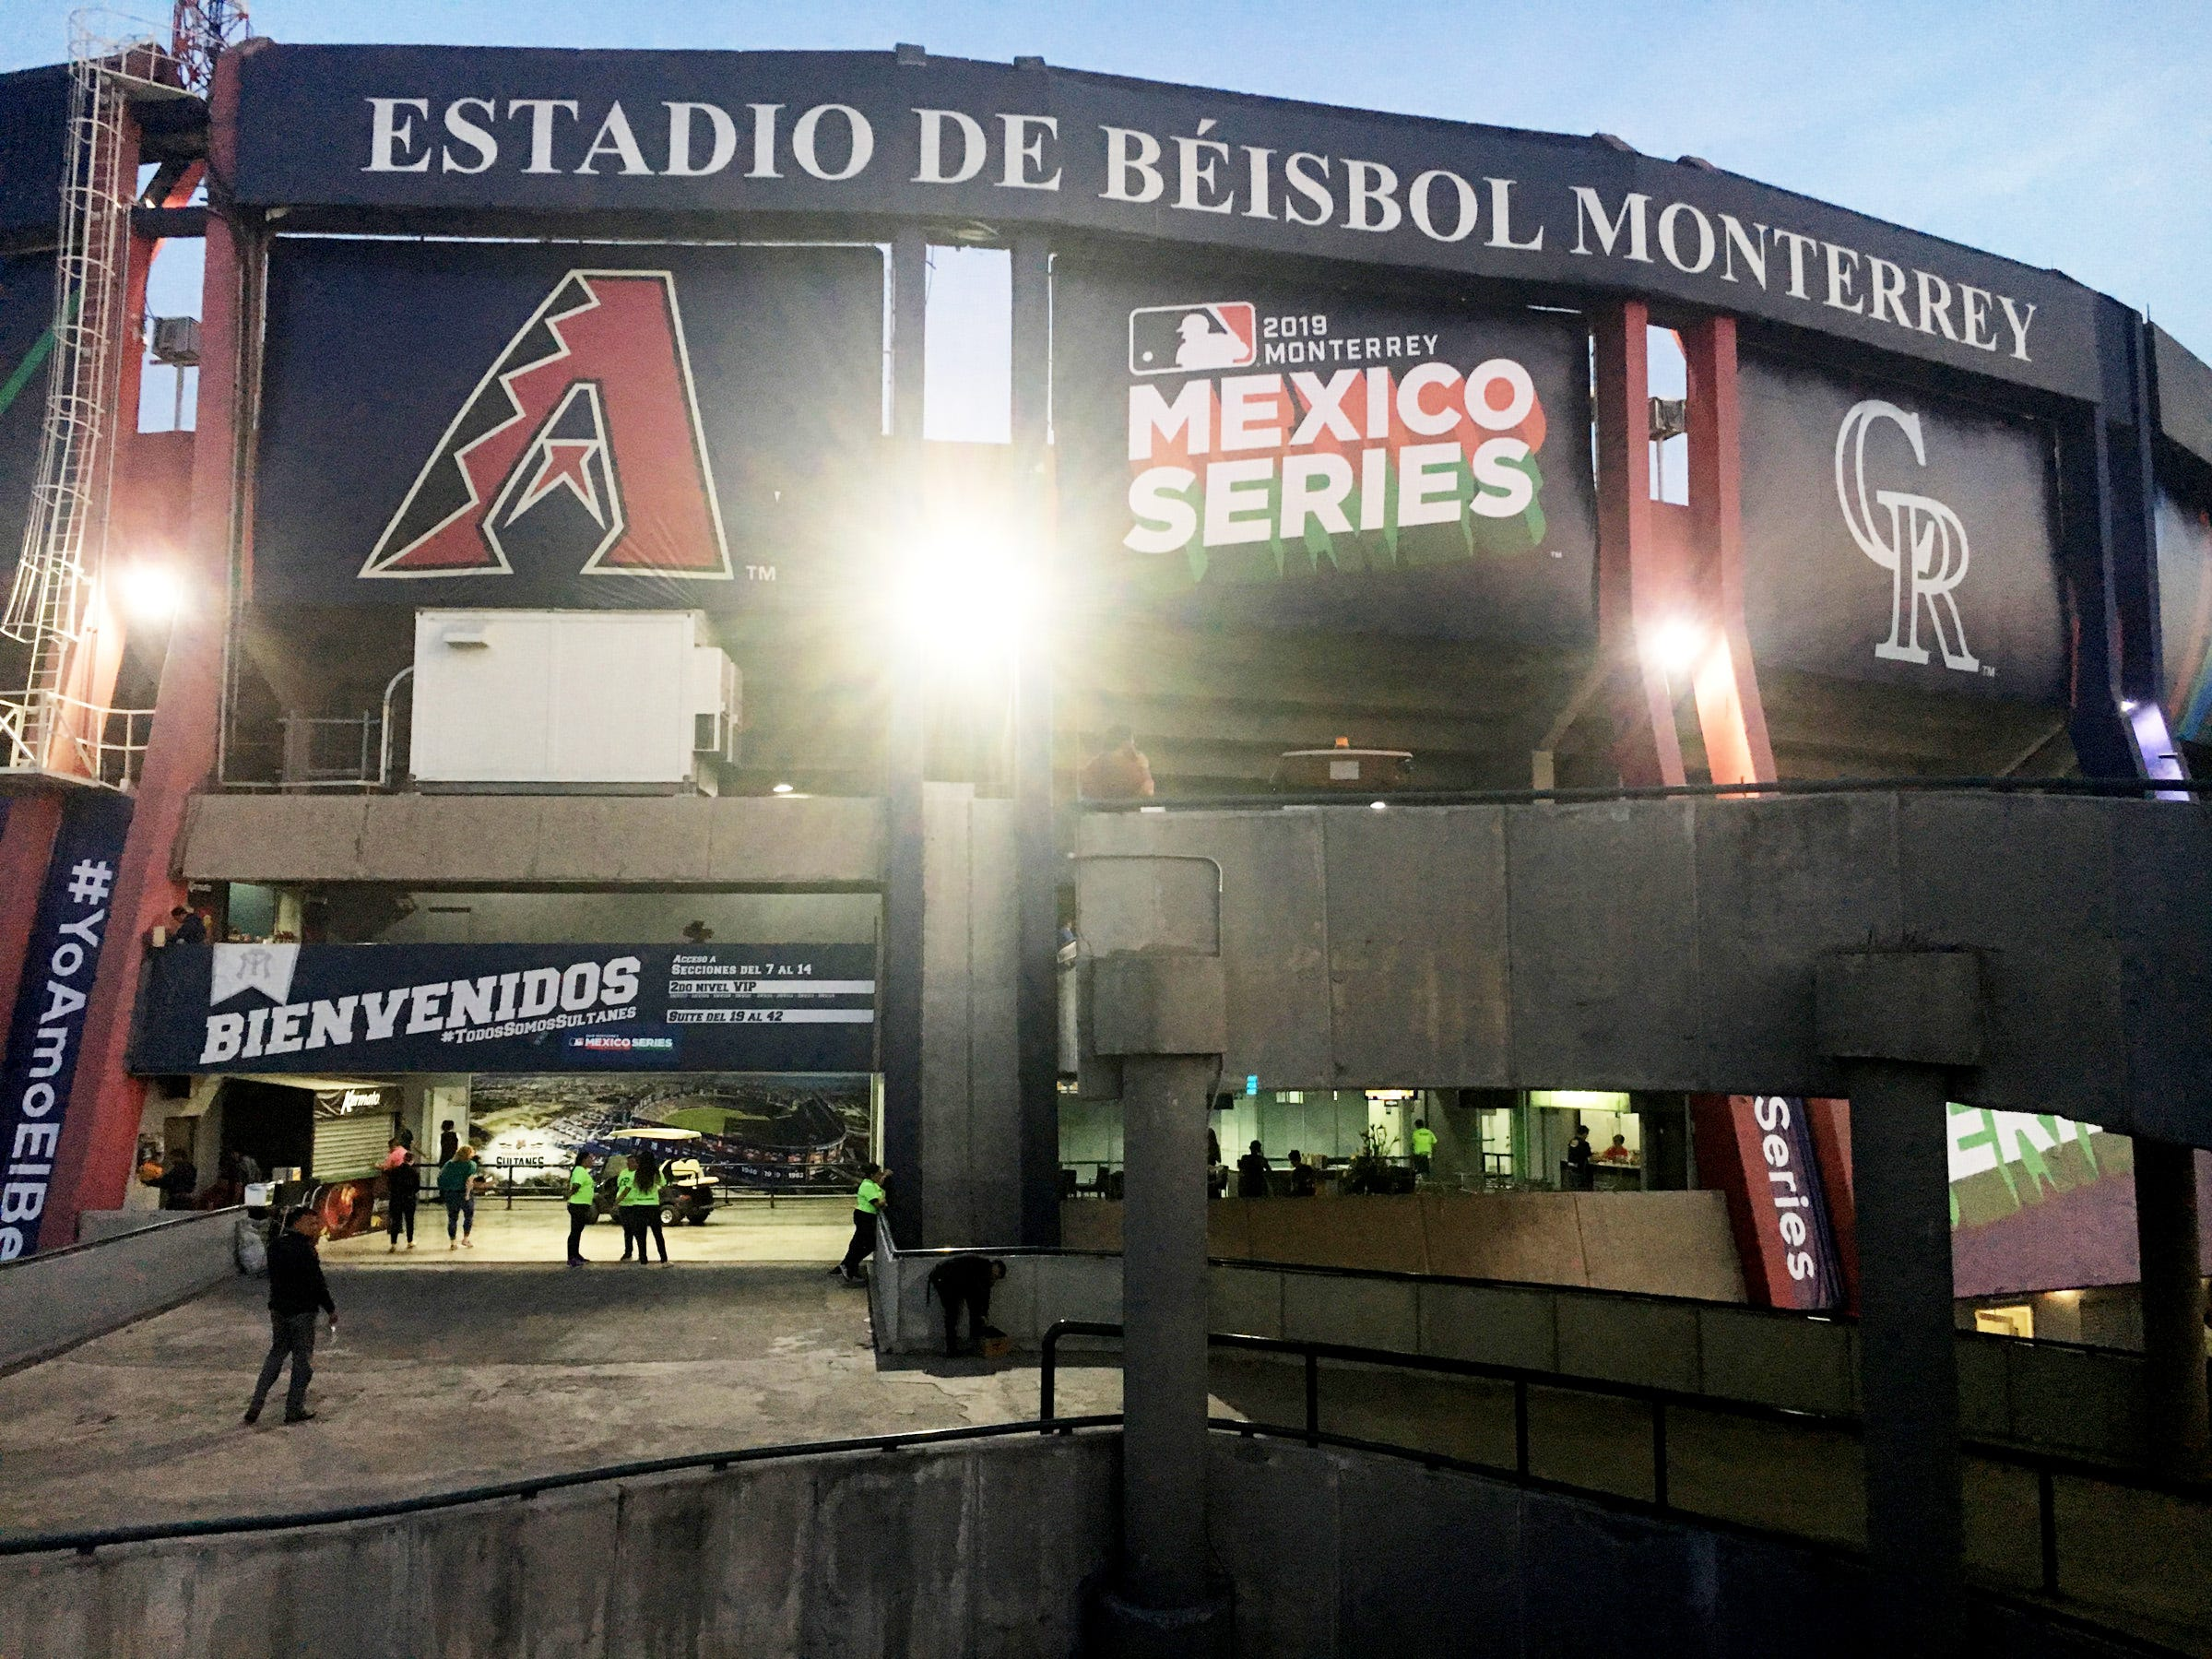 Banners hang outside the Estadio de Beisbol in Monterrey, Mexico, where the Arizona Diamondbacks and the Colorado Rockies played two spring training games in March 2019.